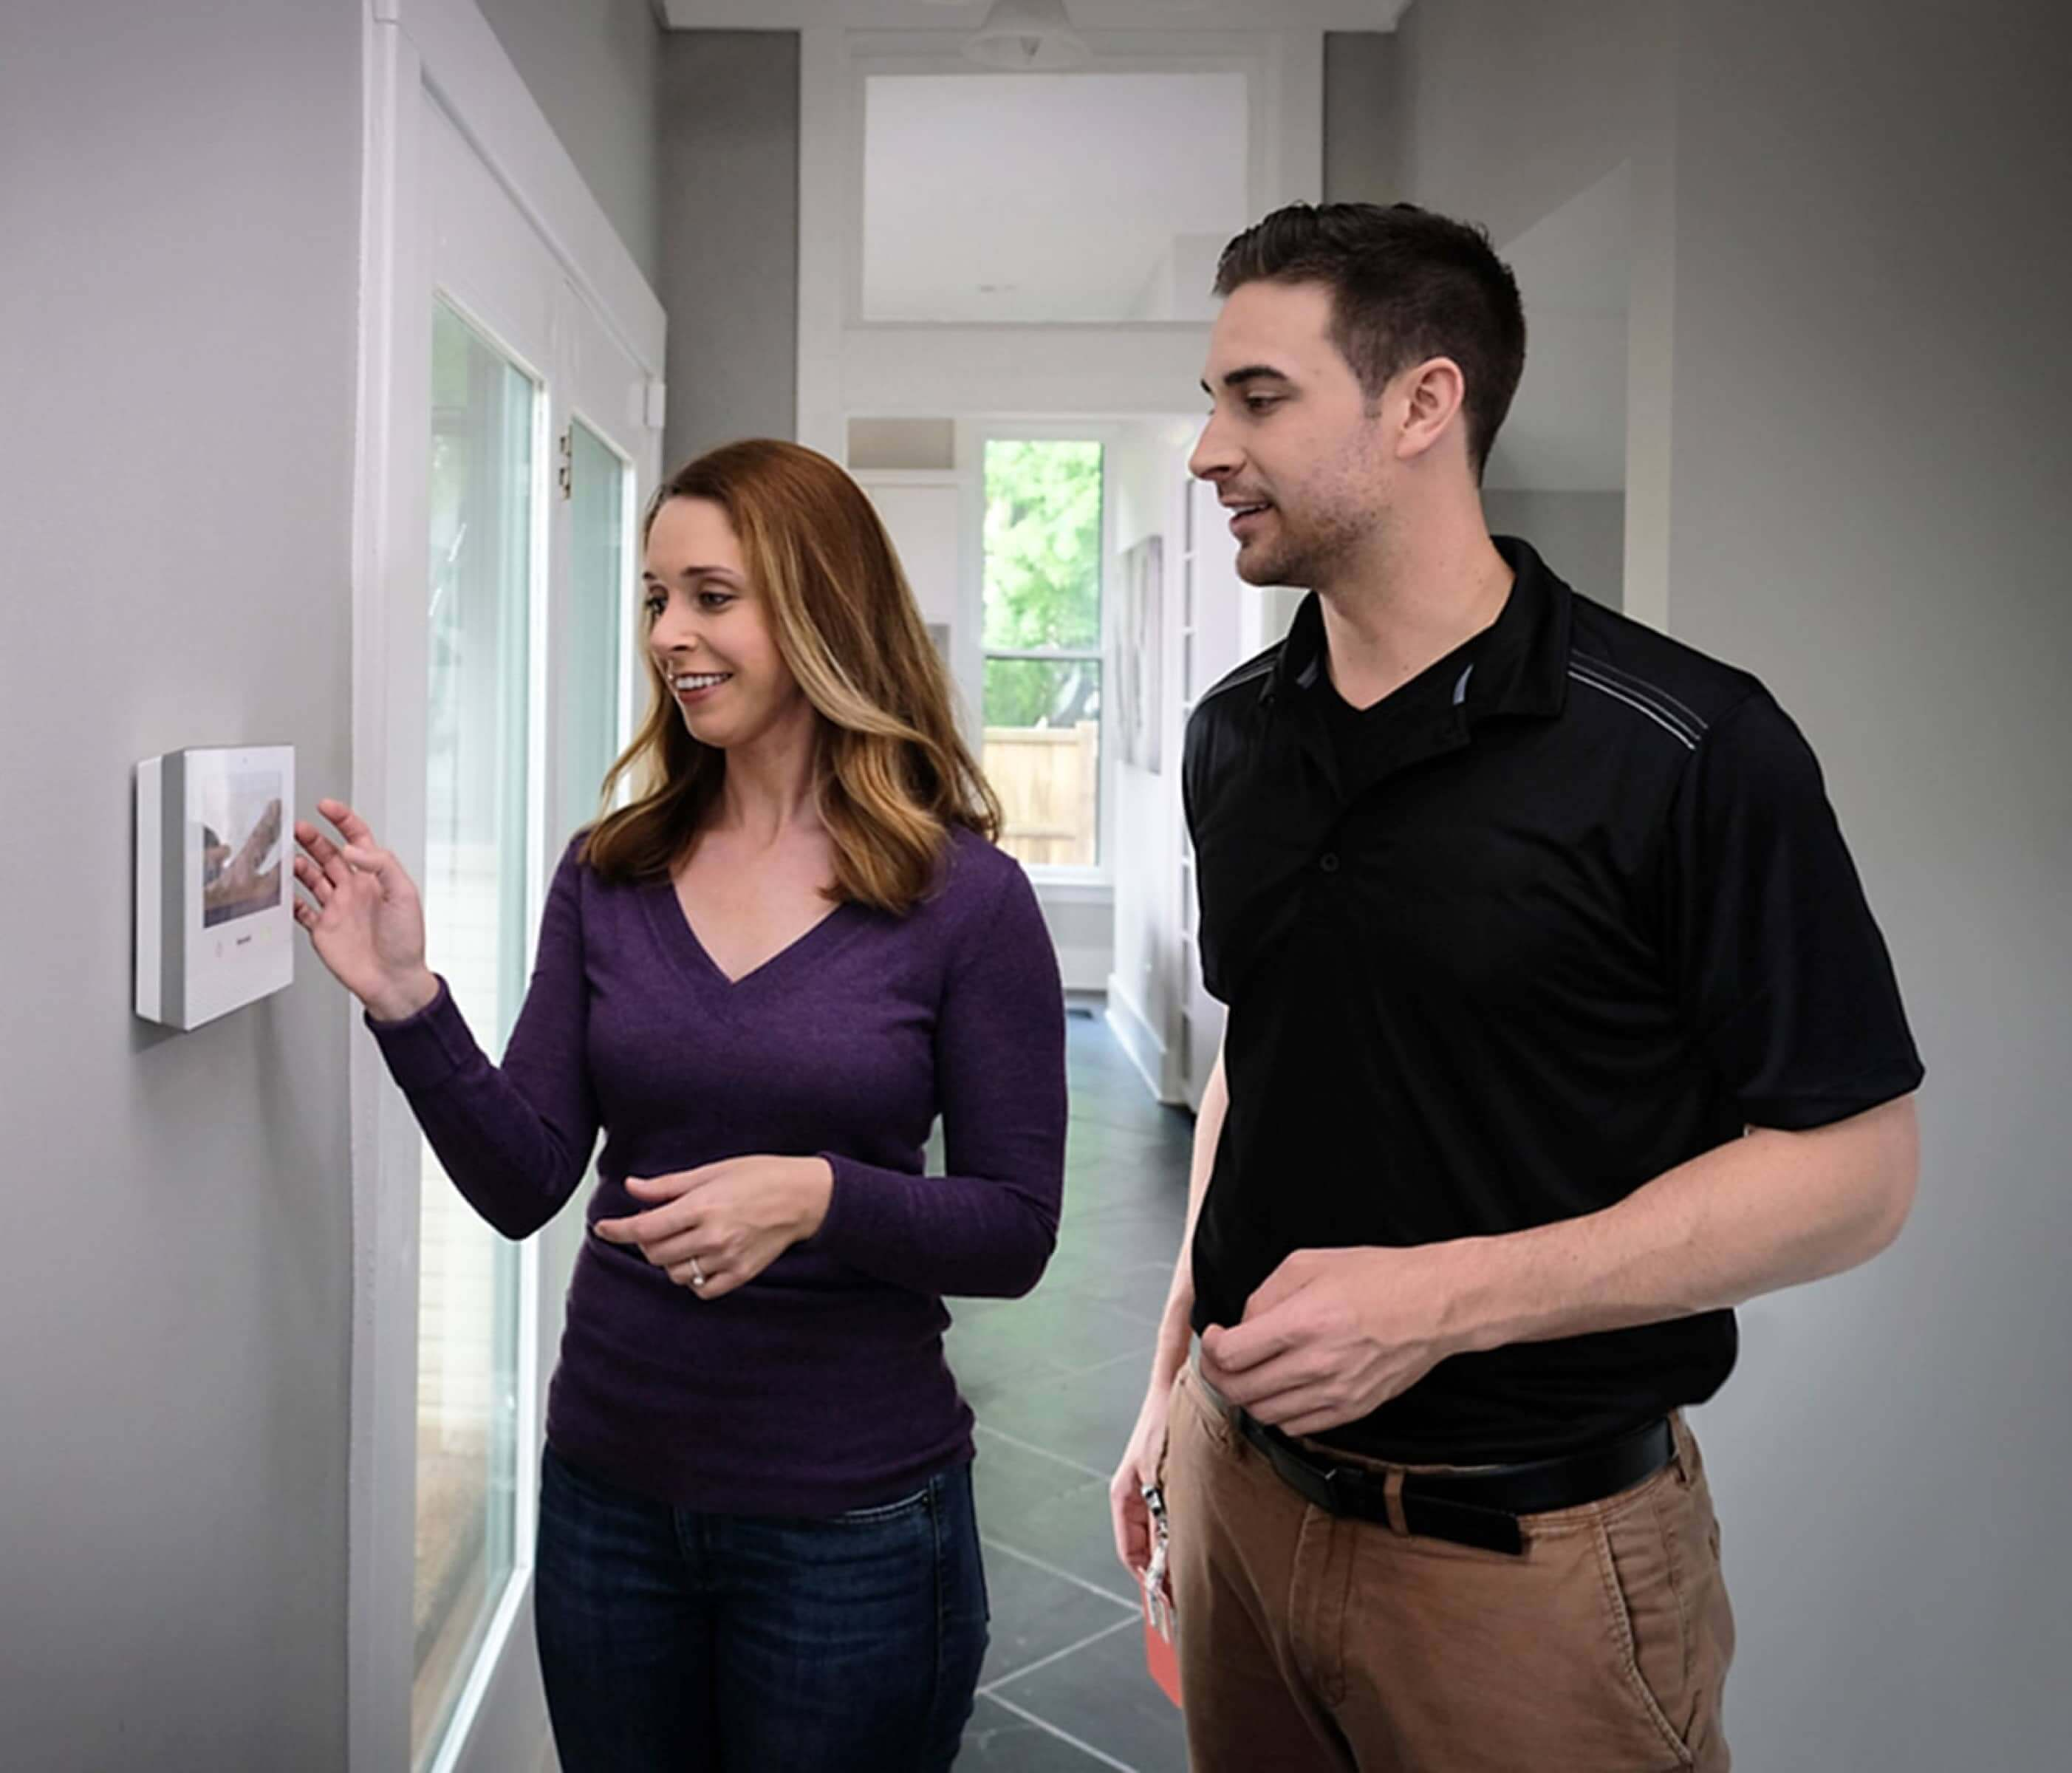 Contractor assisting homeowner with smart home automation installation